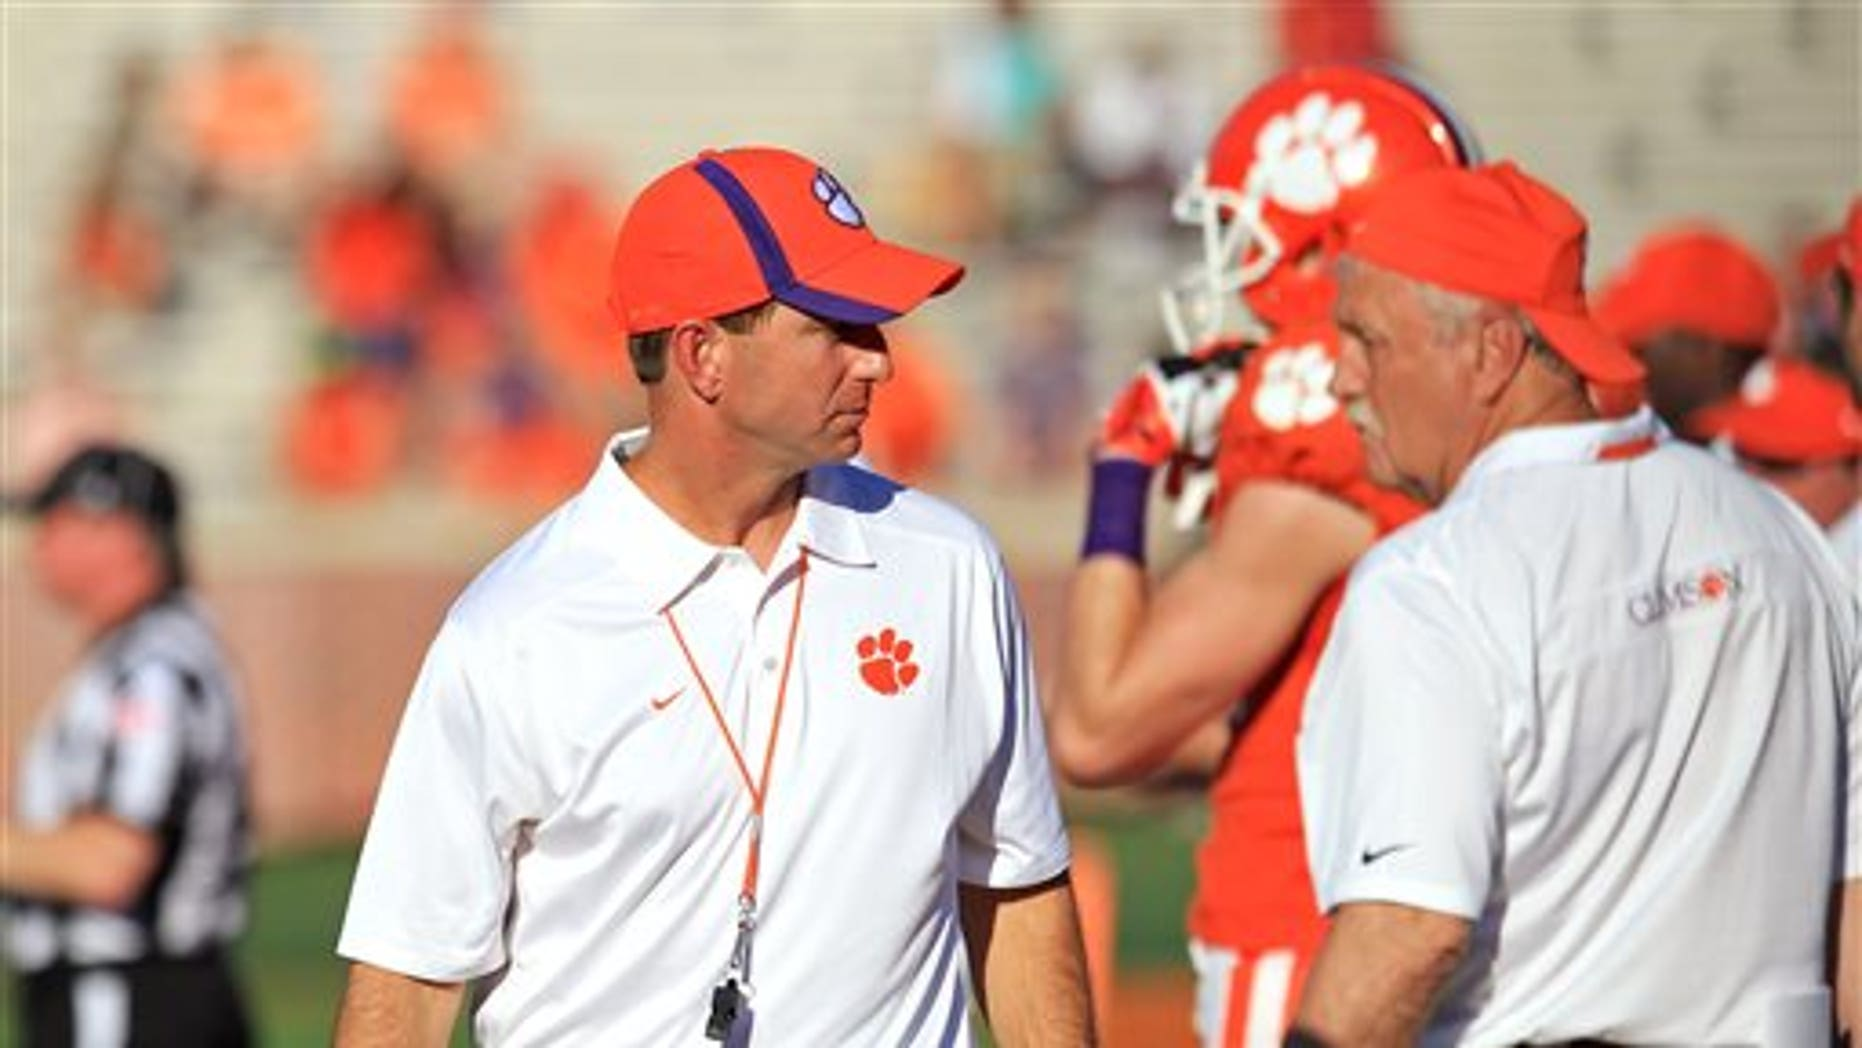 Clemson coach Dabo Swinney walks the sideline during the NCAA college football team's spring game at Memorial Stadium in Clemson, S.C., on Saturday, April 12, 2014. (AP Photo/Anderson Independent-Mail, Mark Crammer) SENECA OUT  GREENVILLE NEWS OUT